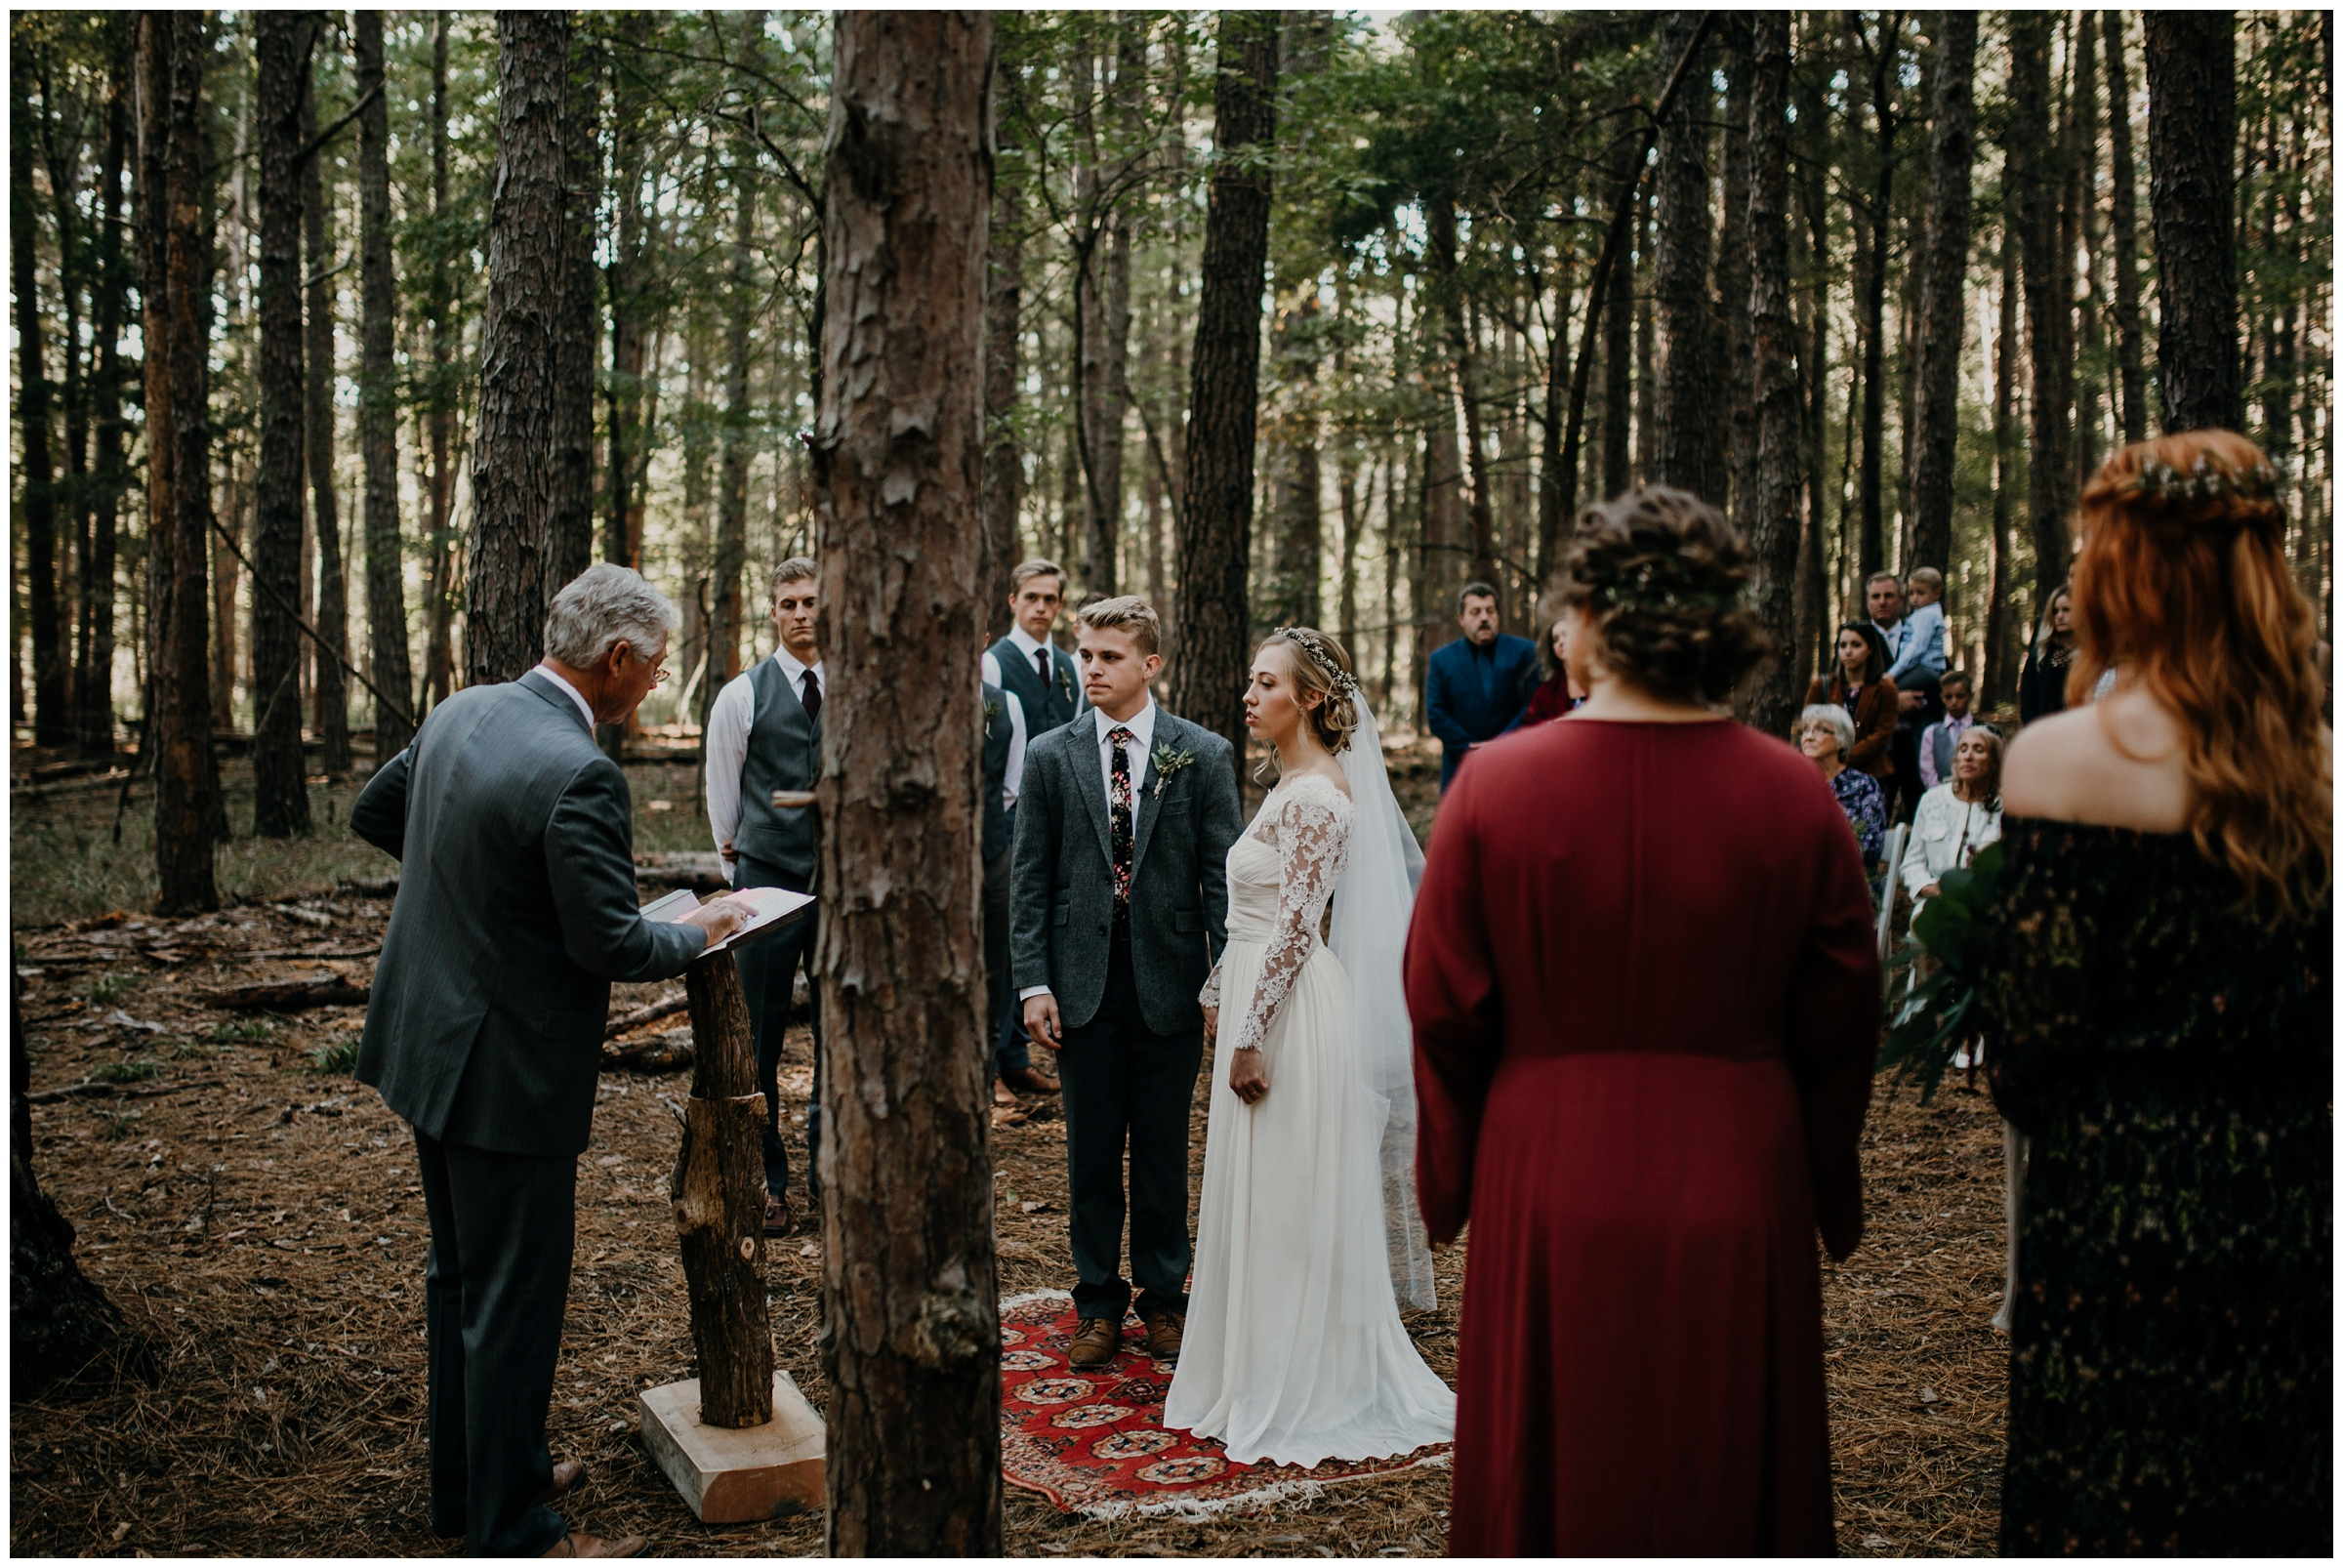 wedding ceremony on red turkish rug in forest boho